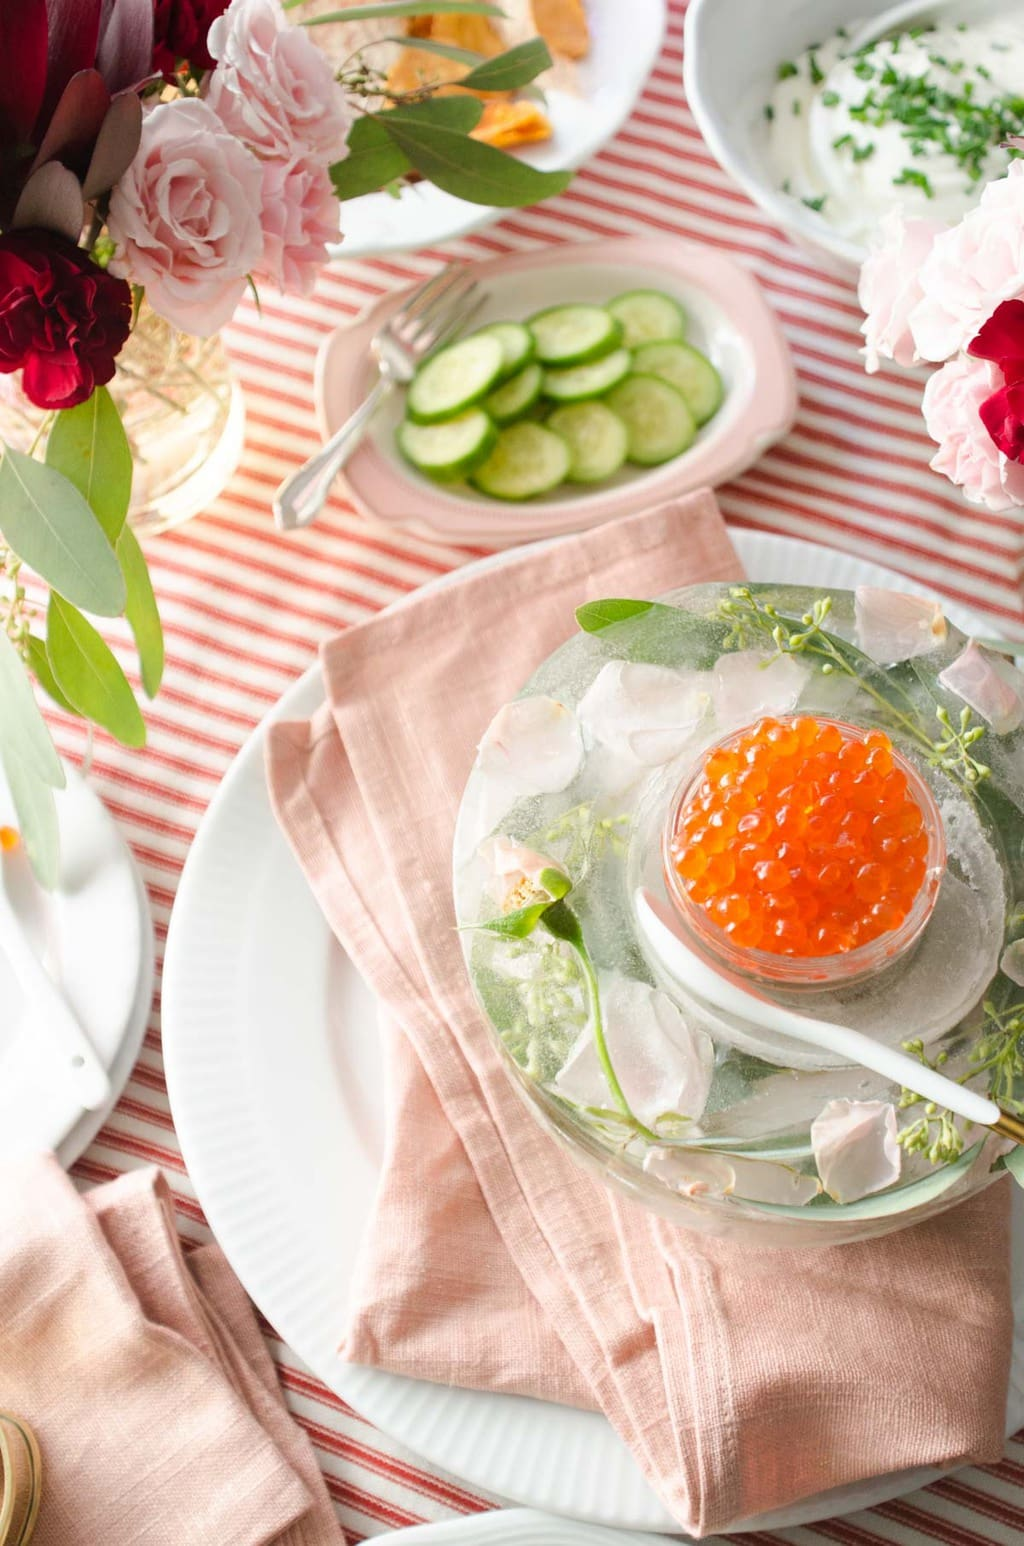 DIY floral ice bowl with salmon roe via @thouswellblog